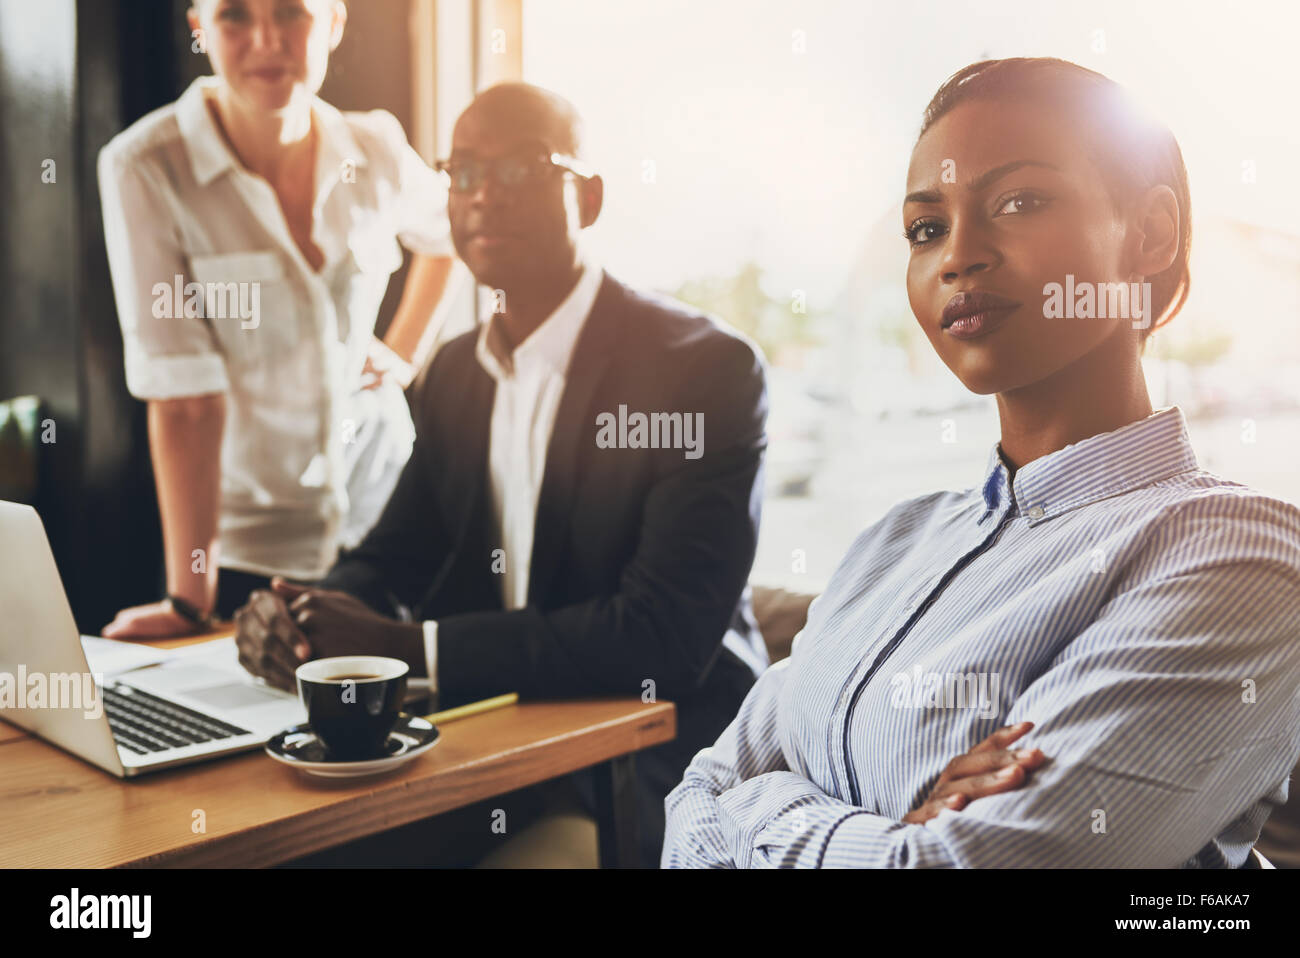 Certains jeunes black business femme assise en face d'autres gens d'affaires Photo Stock